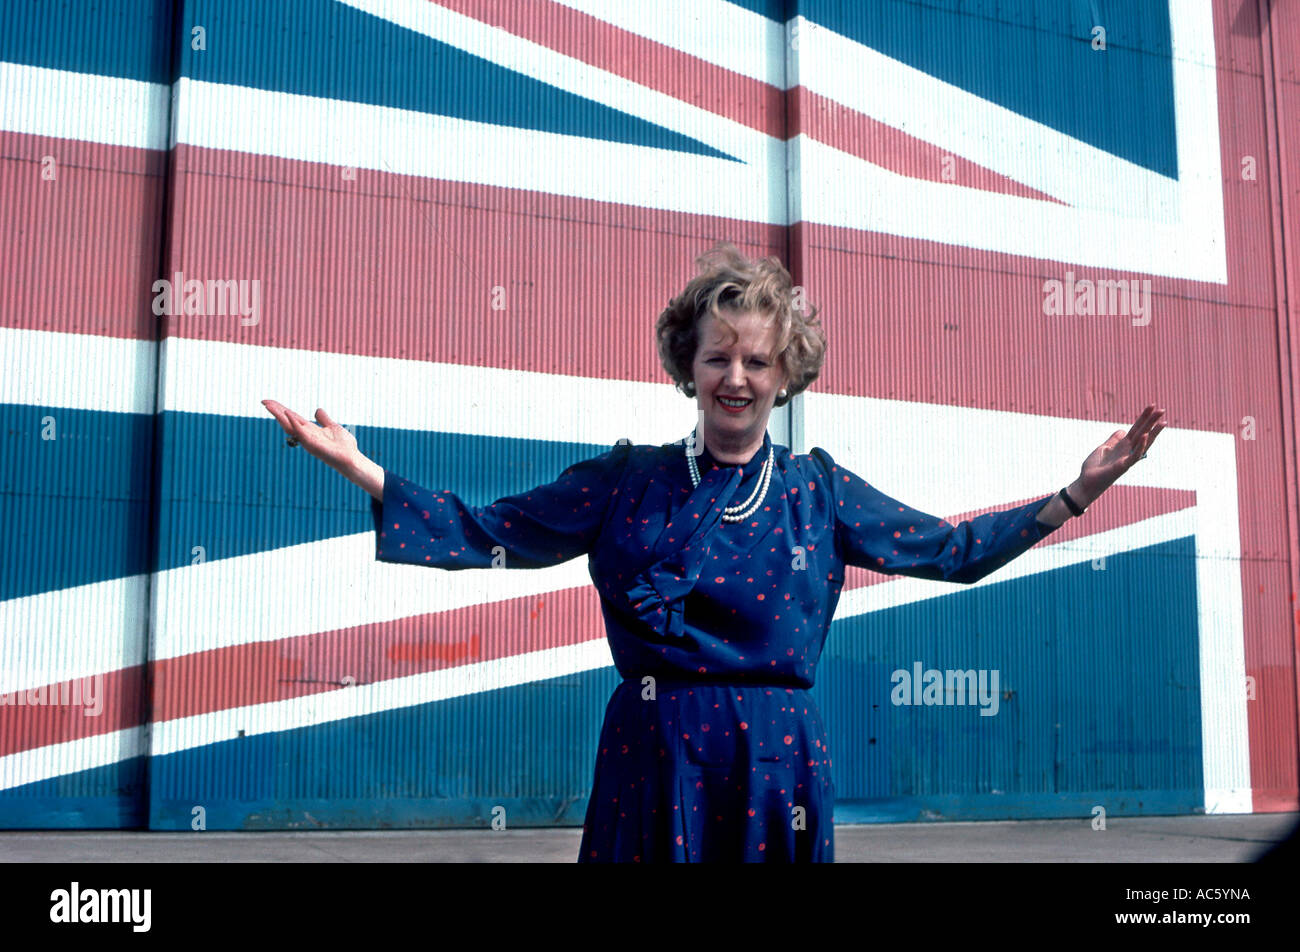 MARGARET THATCHER 1983 ELECTION CAMPAIGN - Stock Image